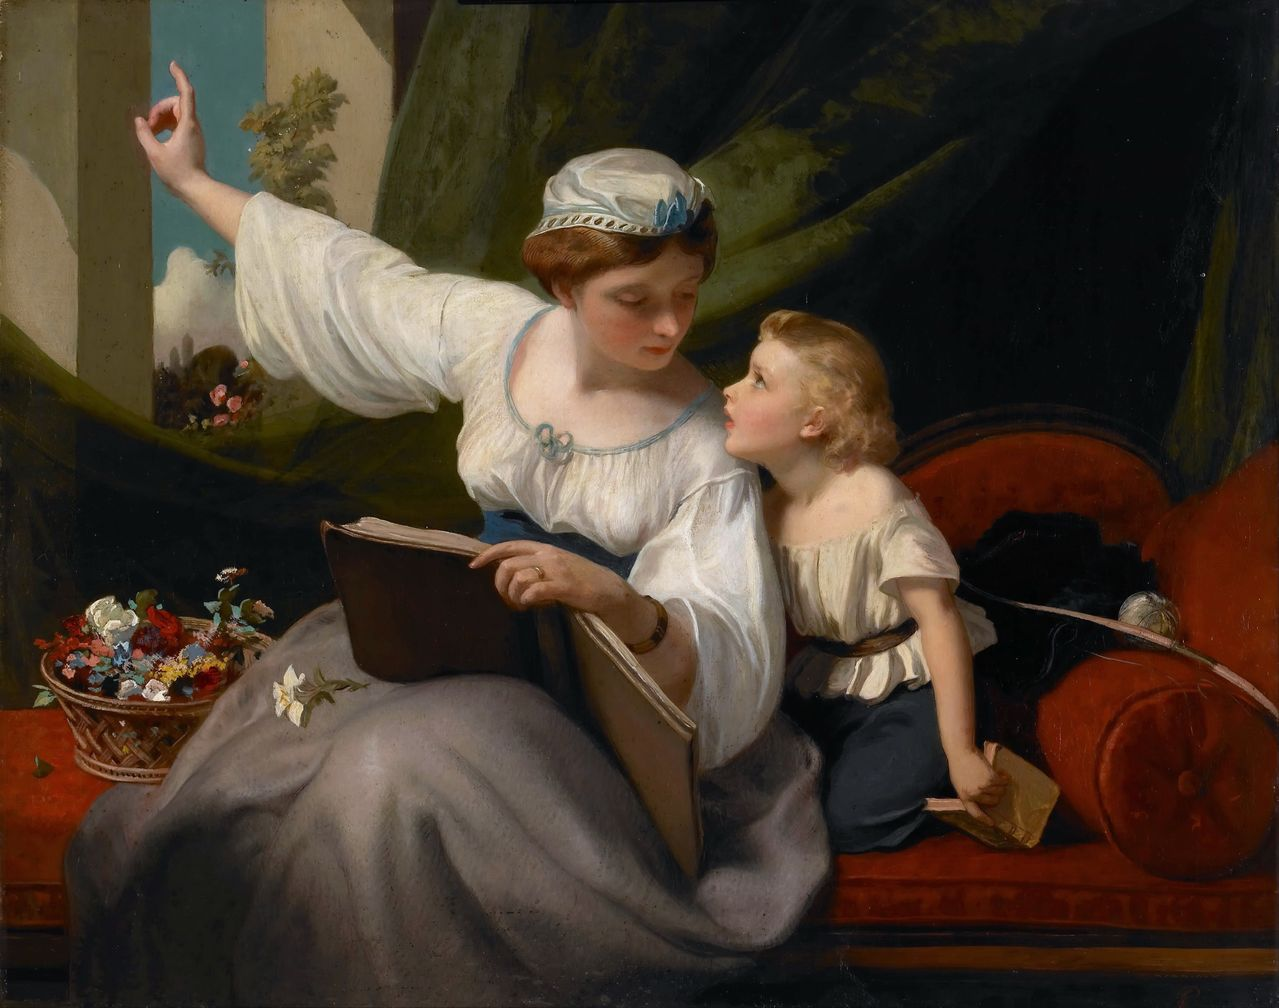 The Fairy Tale by James Sant, R.A. (1820 - 1916)